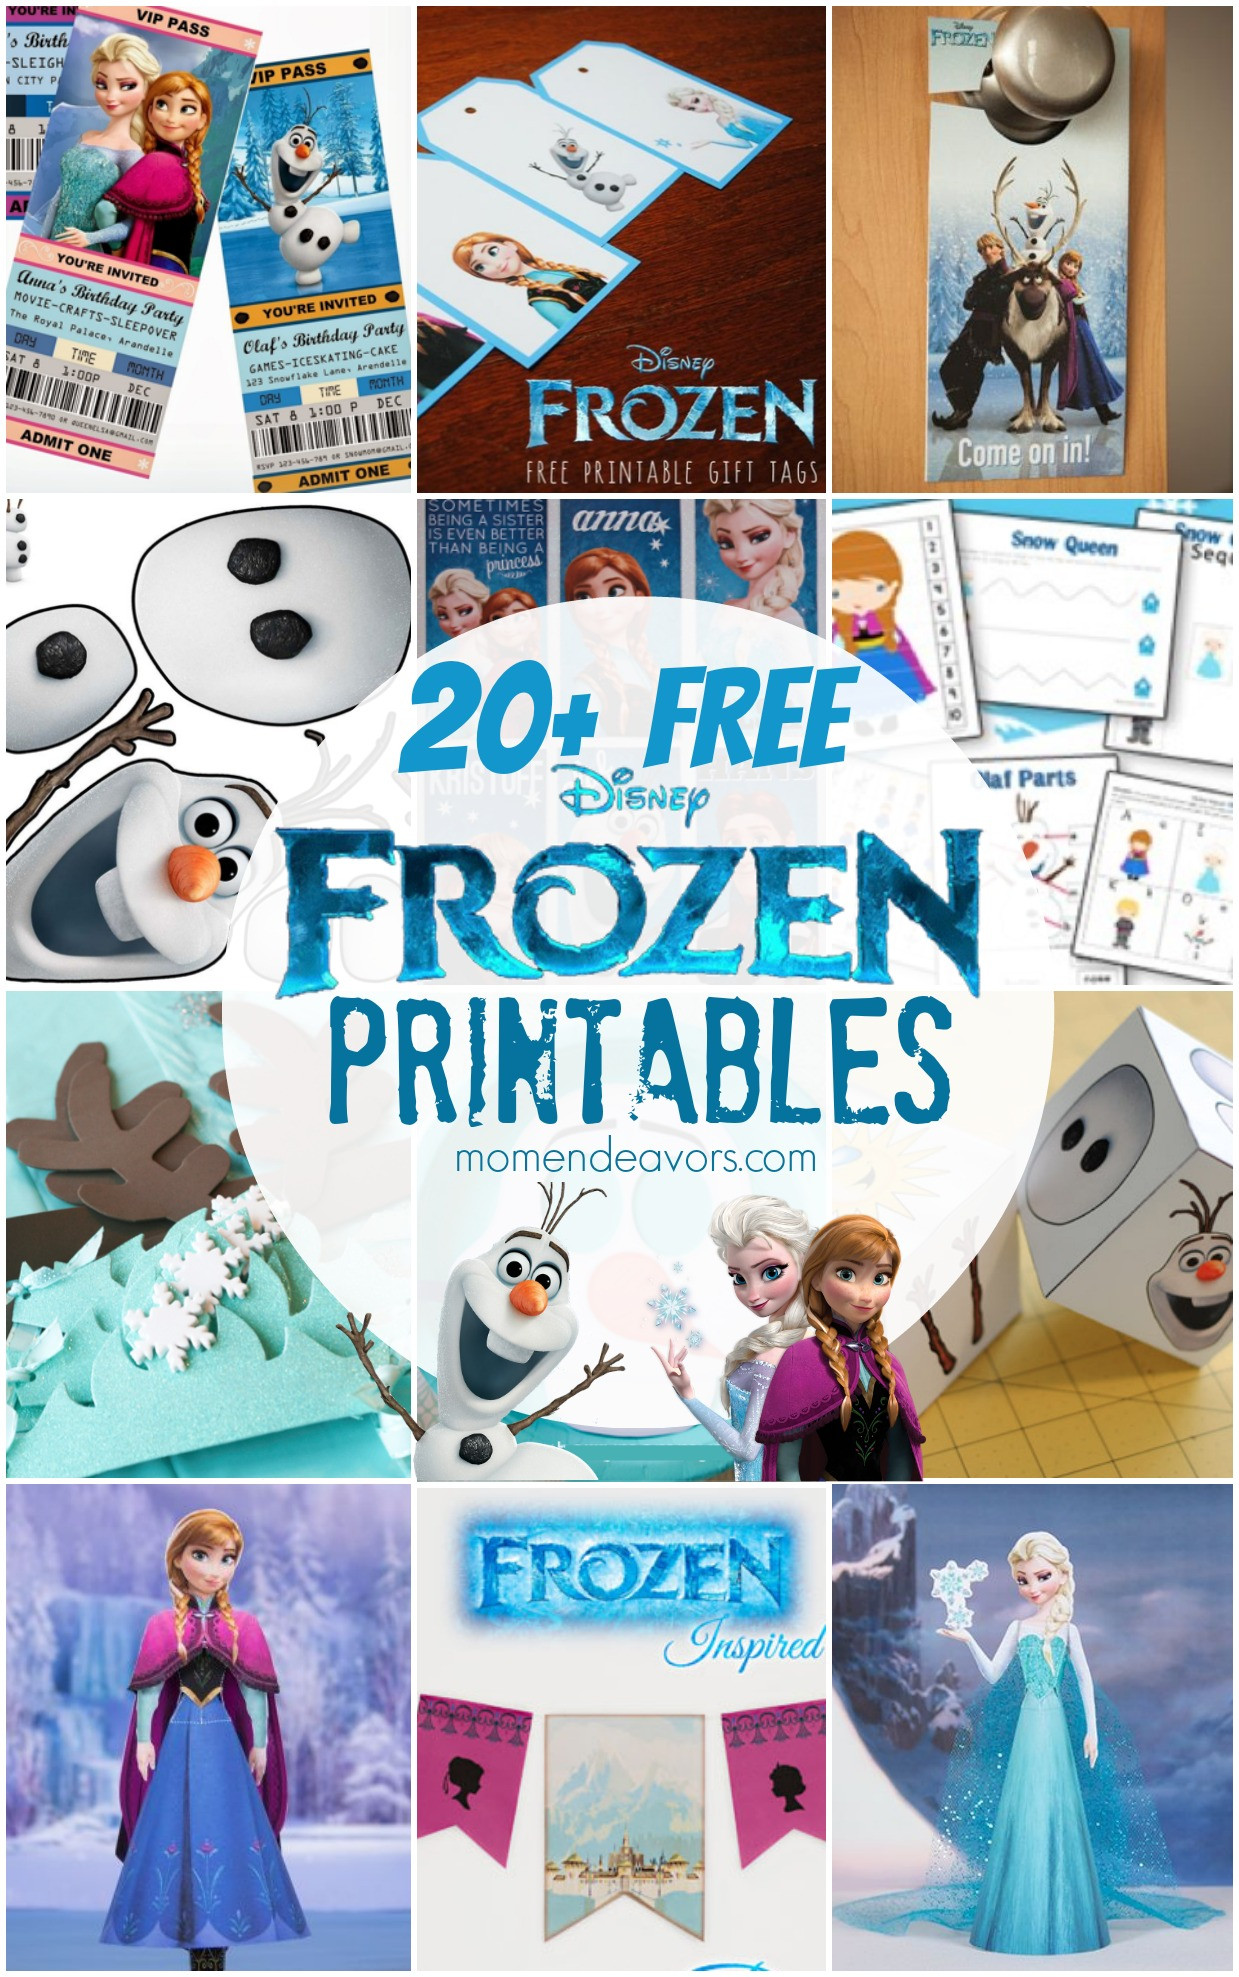 Frozen Printable Birthday Invitations 20 Free Disney Frozen Printables Activity Sheets & Party